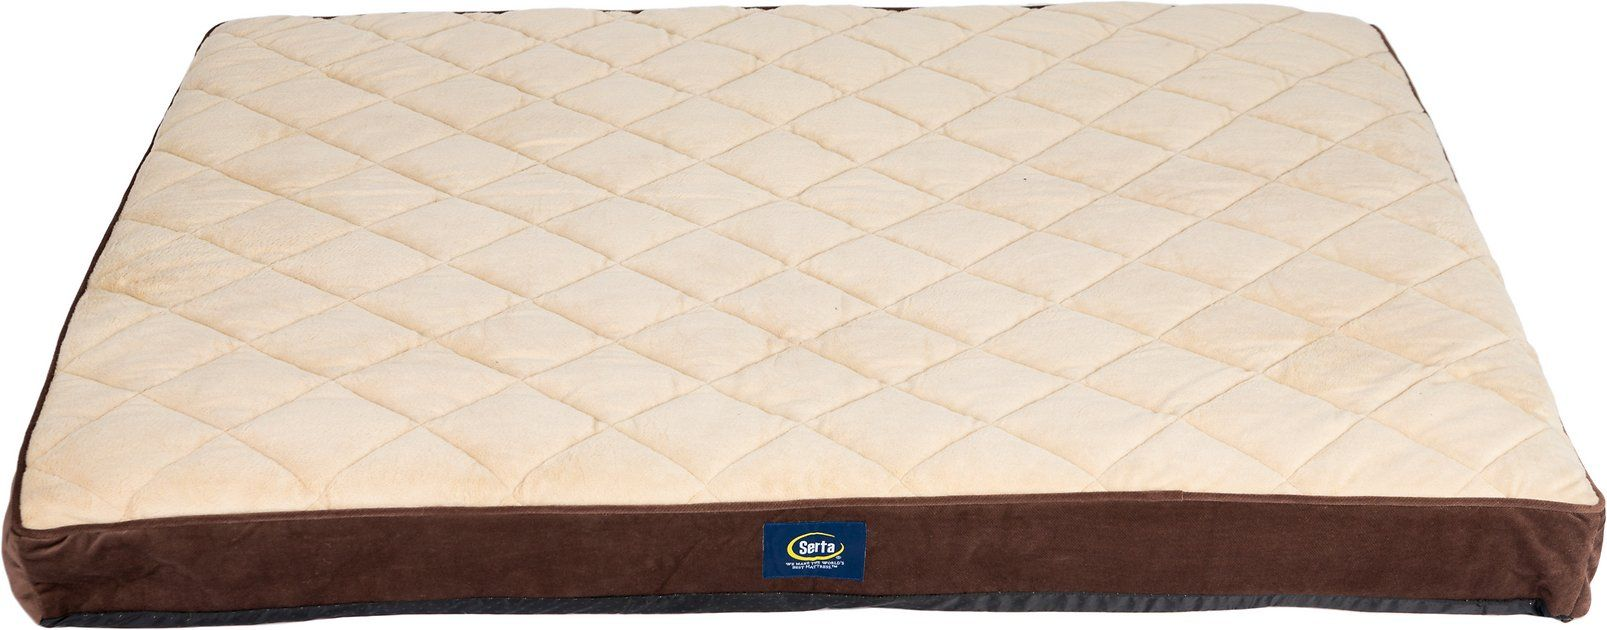 Buy Serta Orthopedic Quilted Pillowtop Dog & Cat Bed